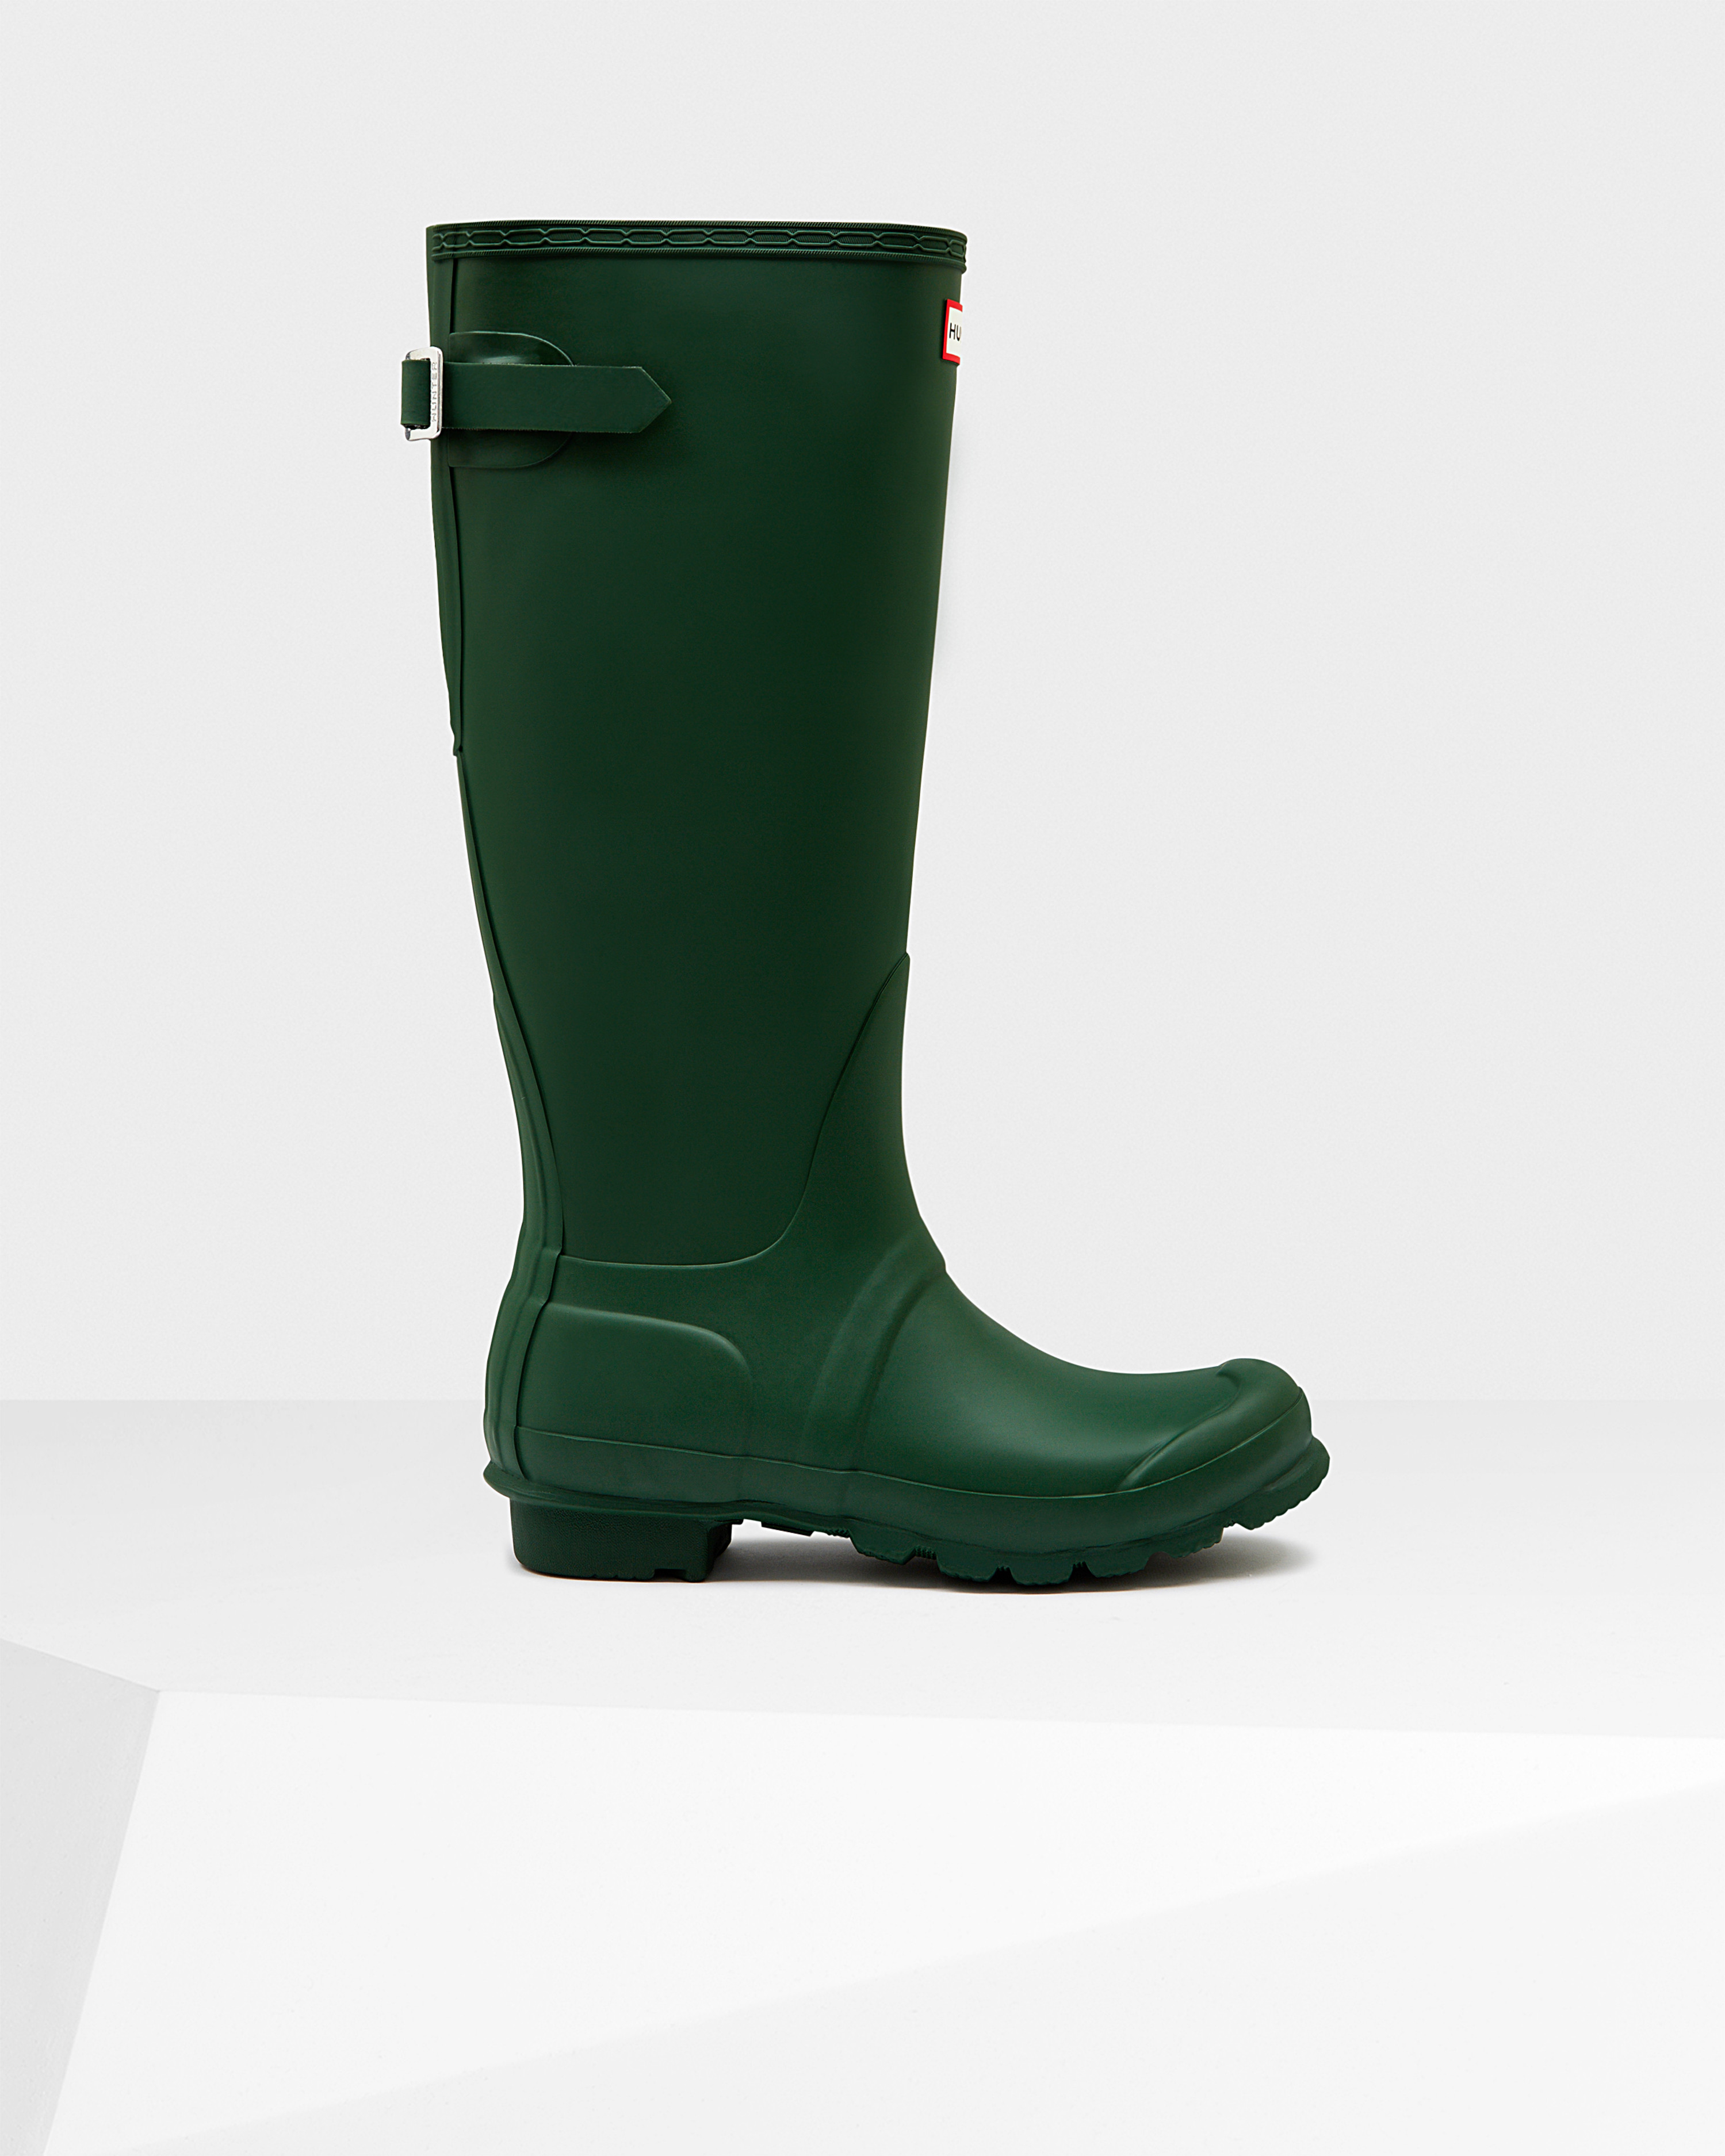 Awesome Joules Evedon Women Rubber Green Rain Boot Boots